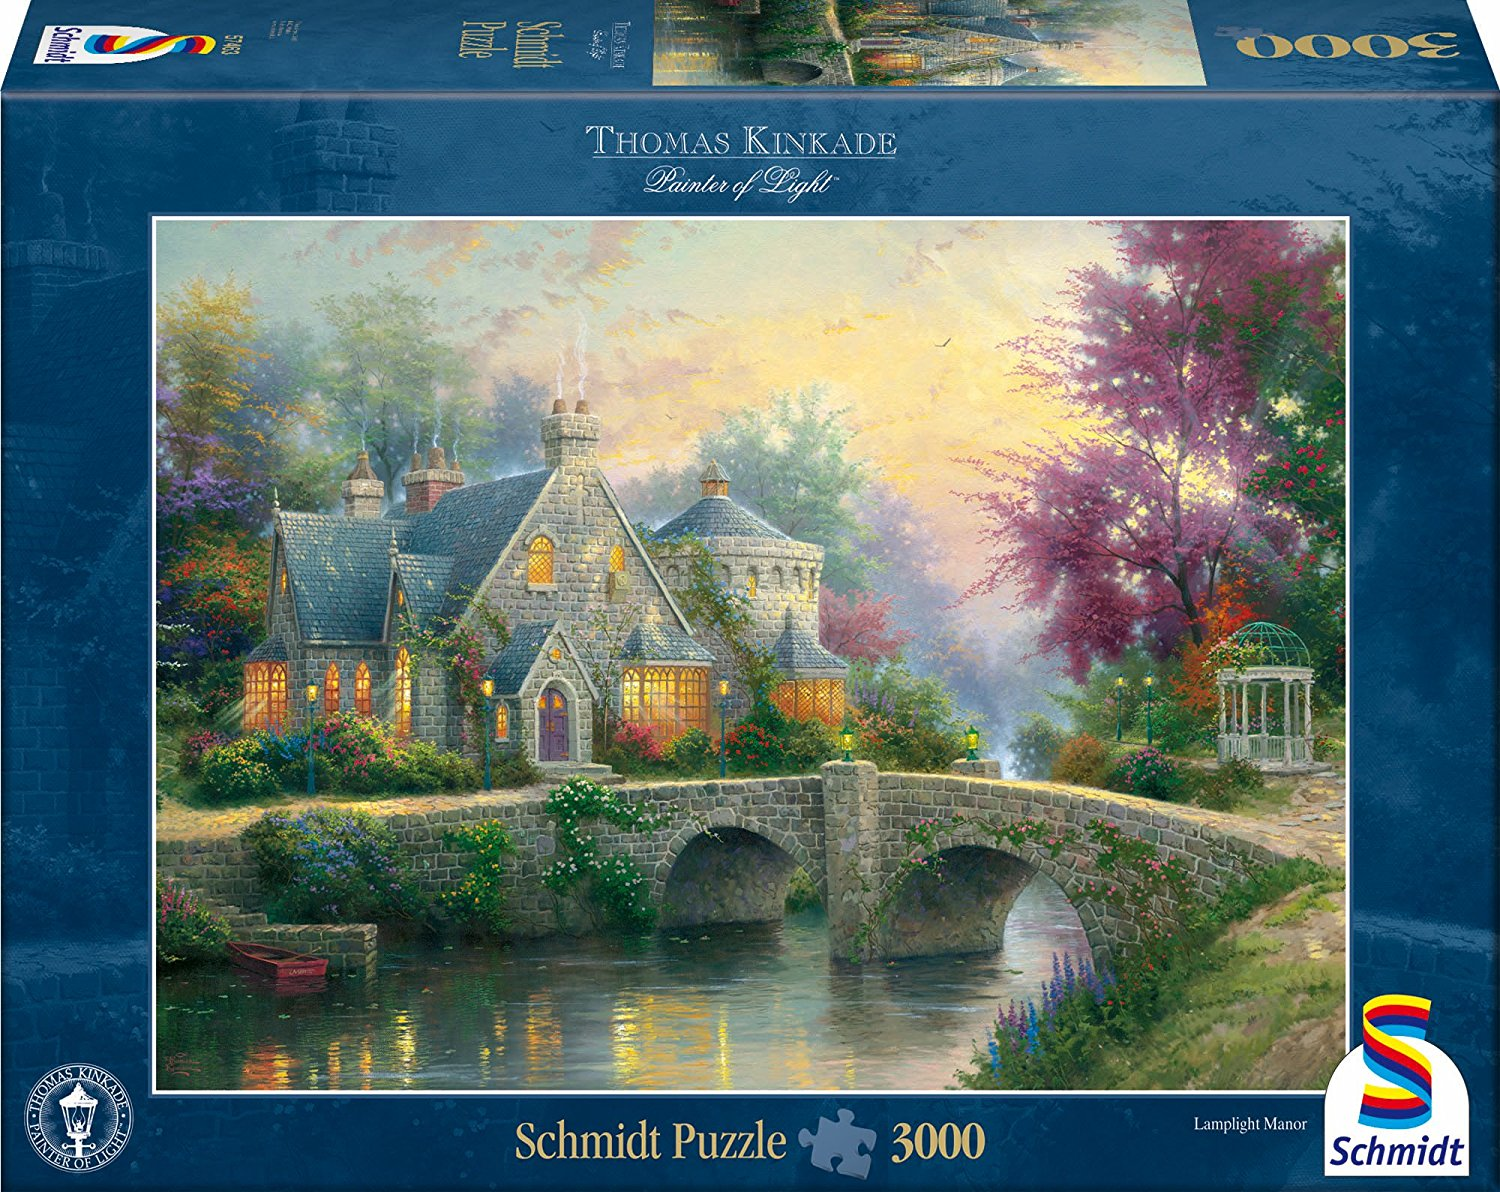 Puzzle Lamplight Manor